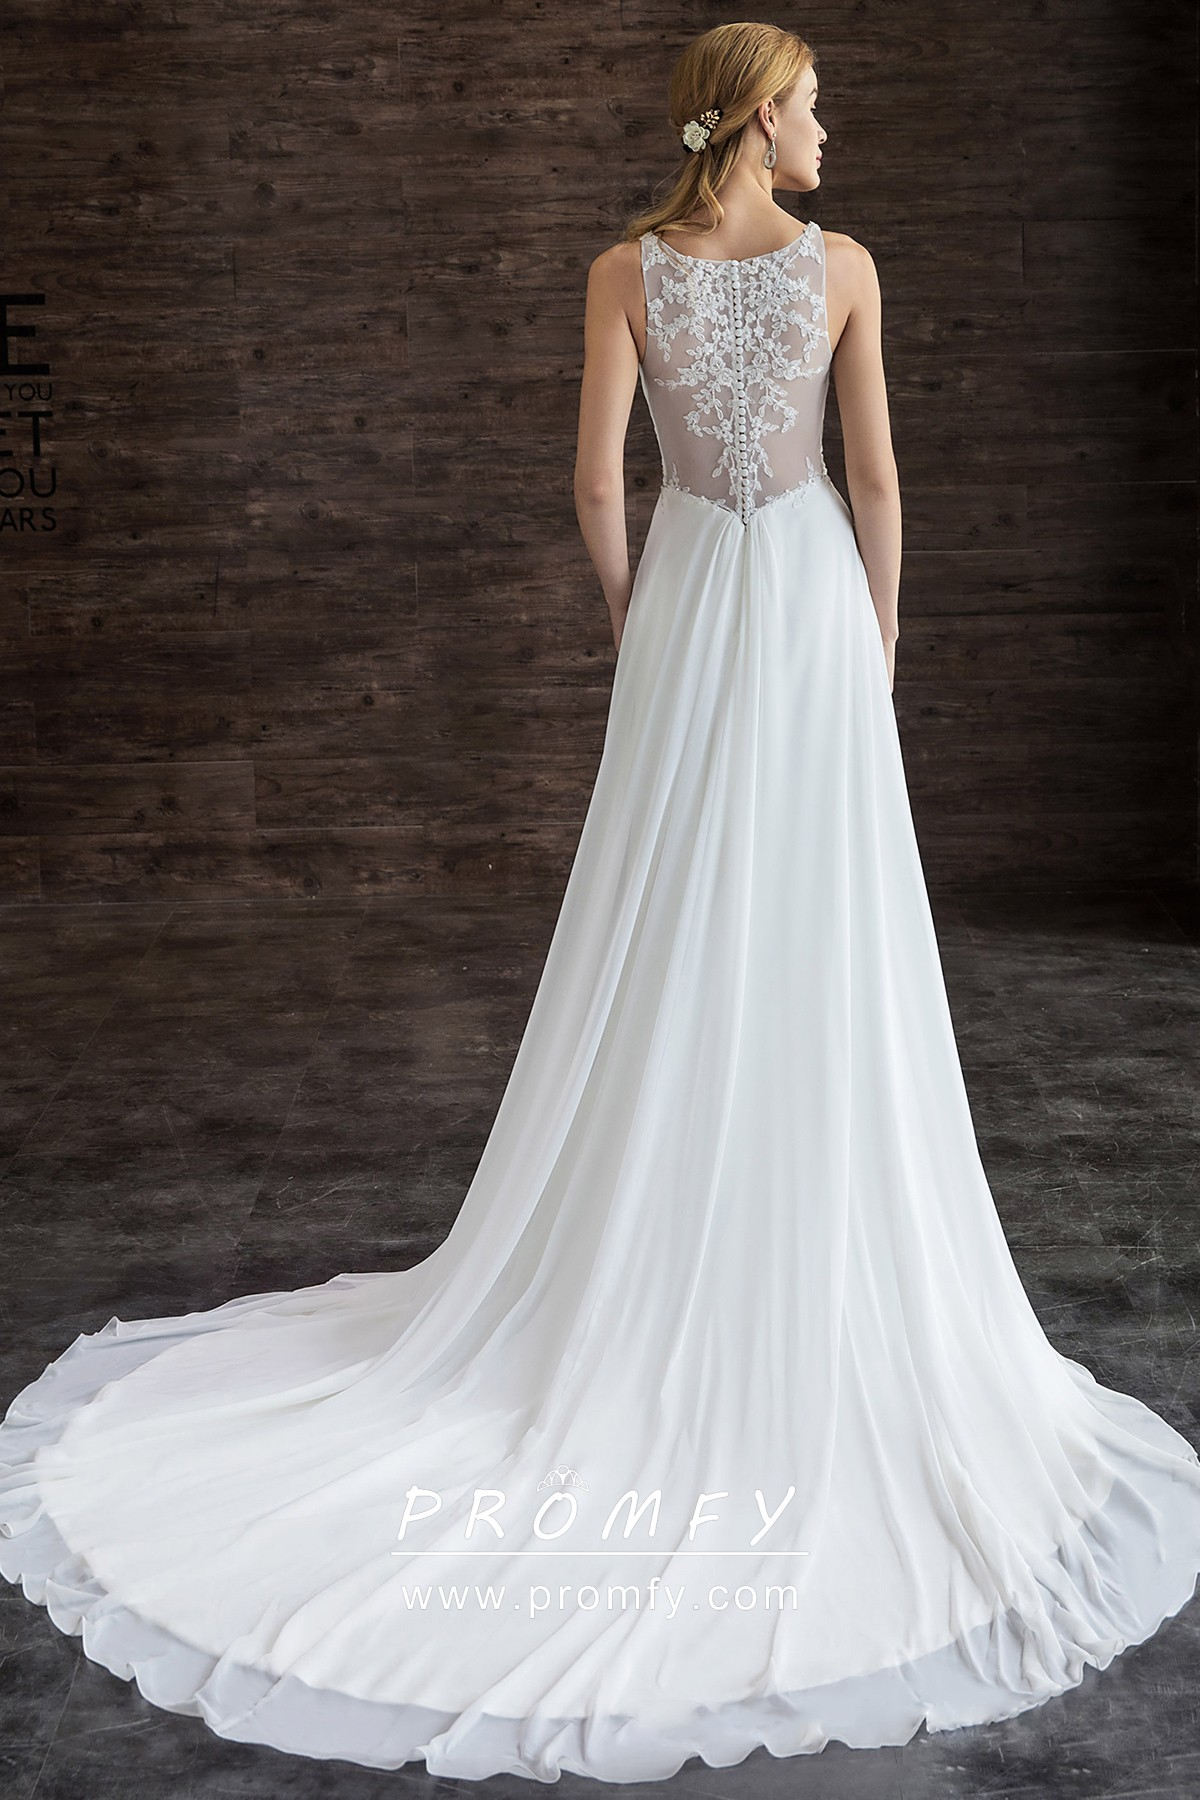 Long Chiffon Wedding Dress With Cathedral Train Promfy